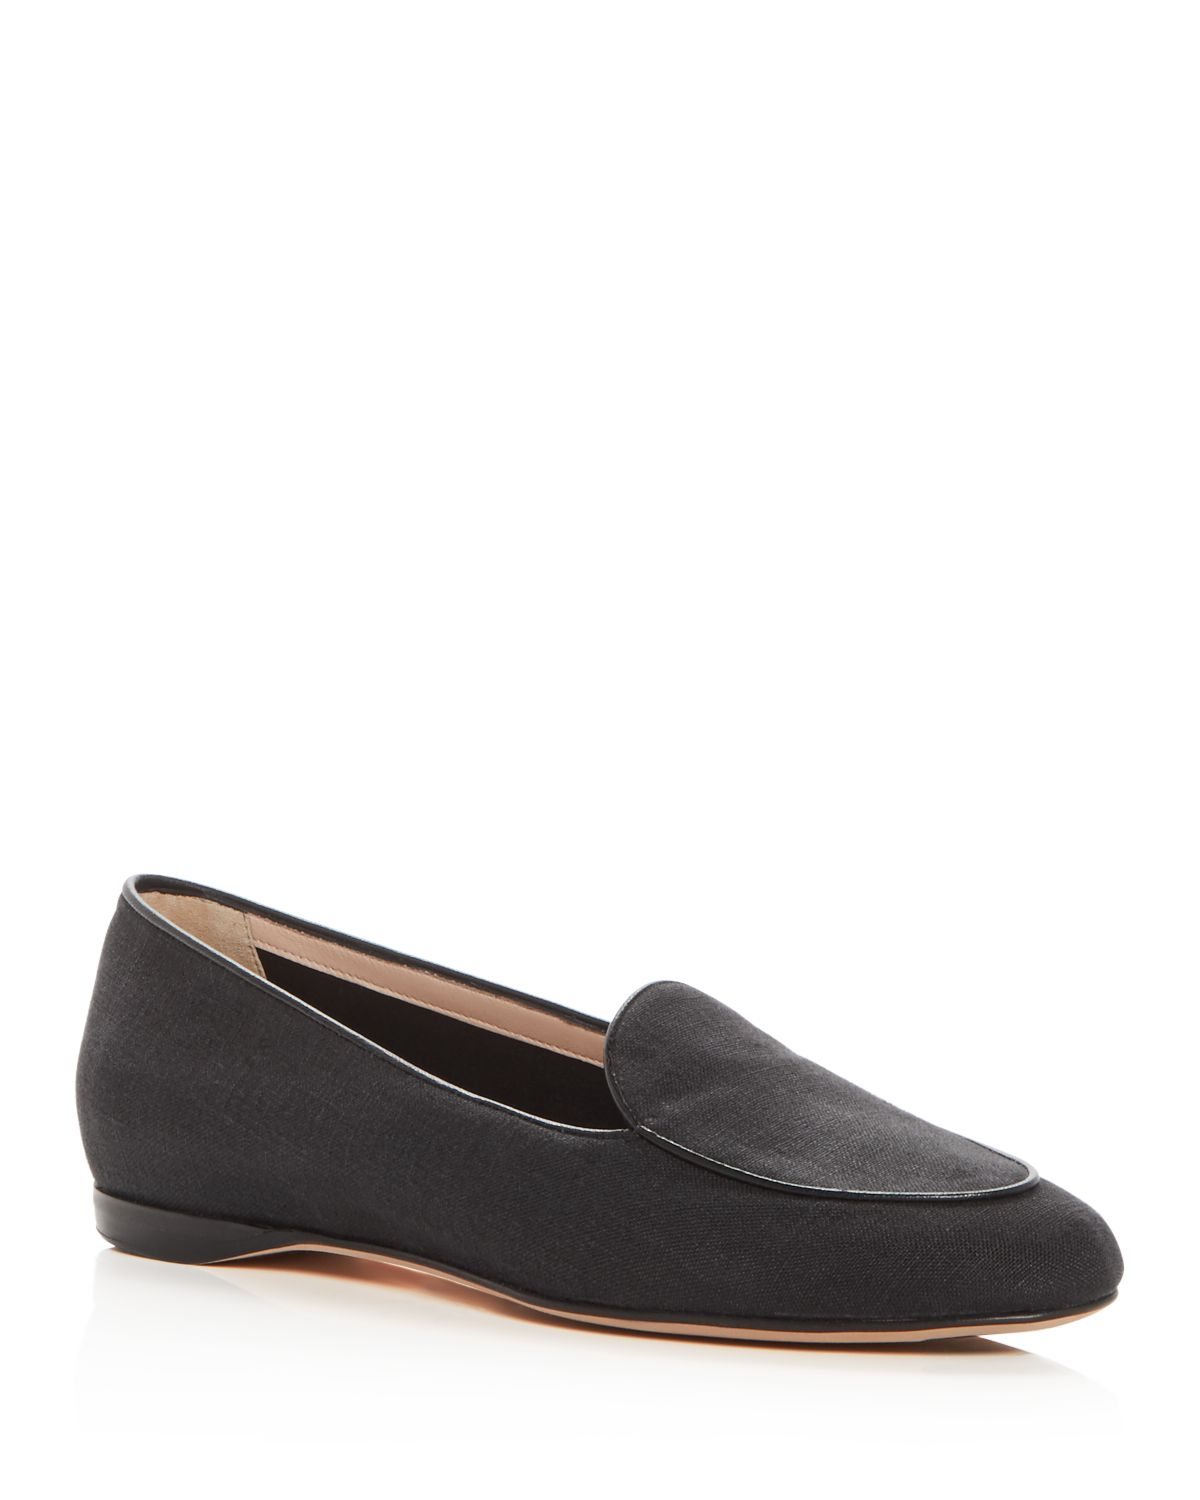 Sale alerts for  Women's Apron Toe Loafers - Covvet